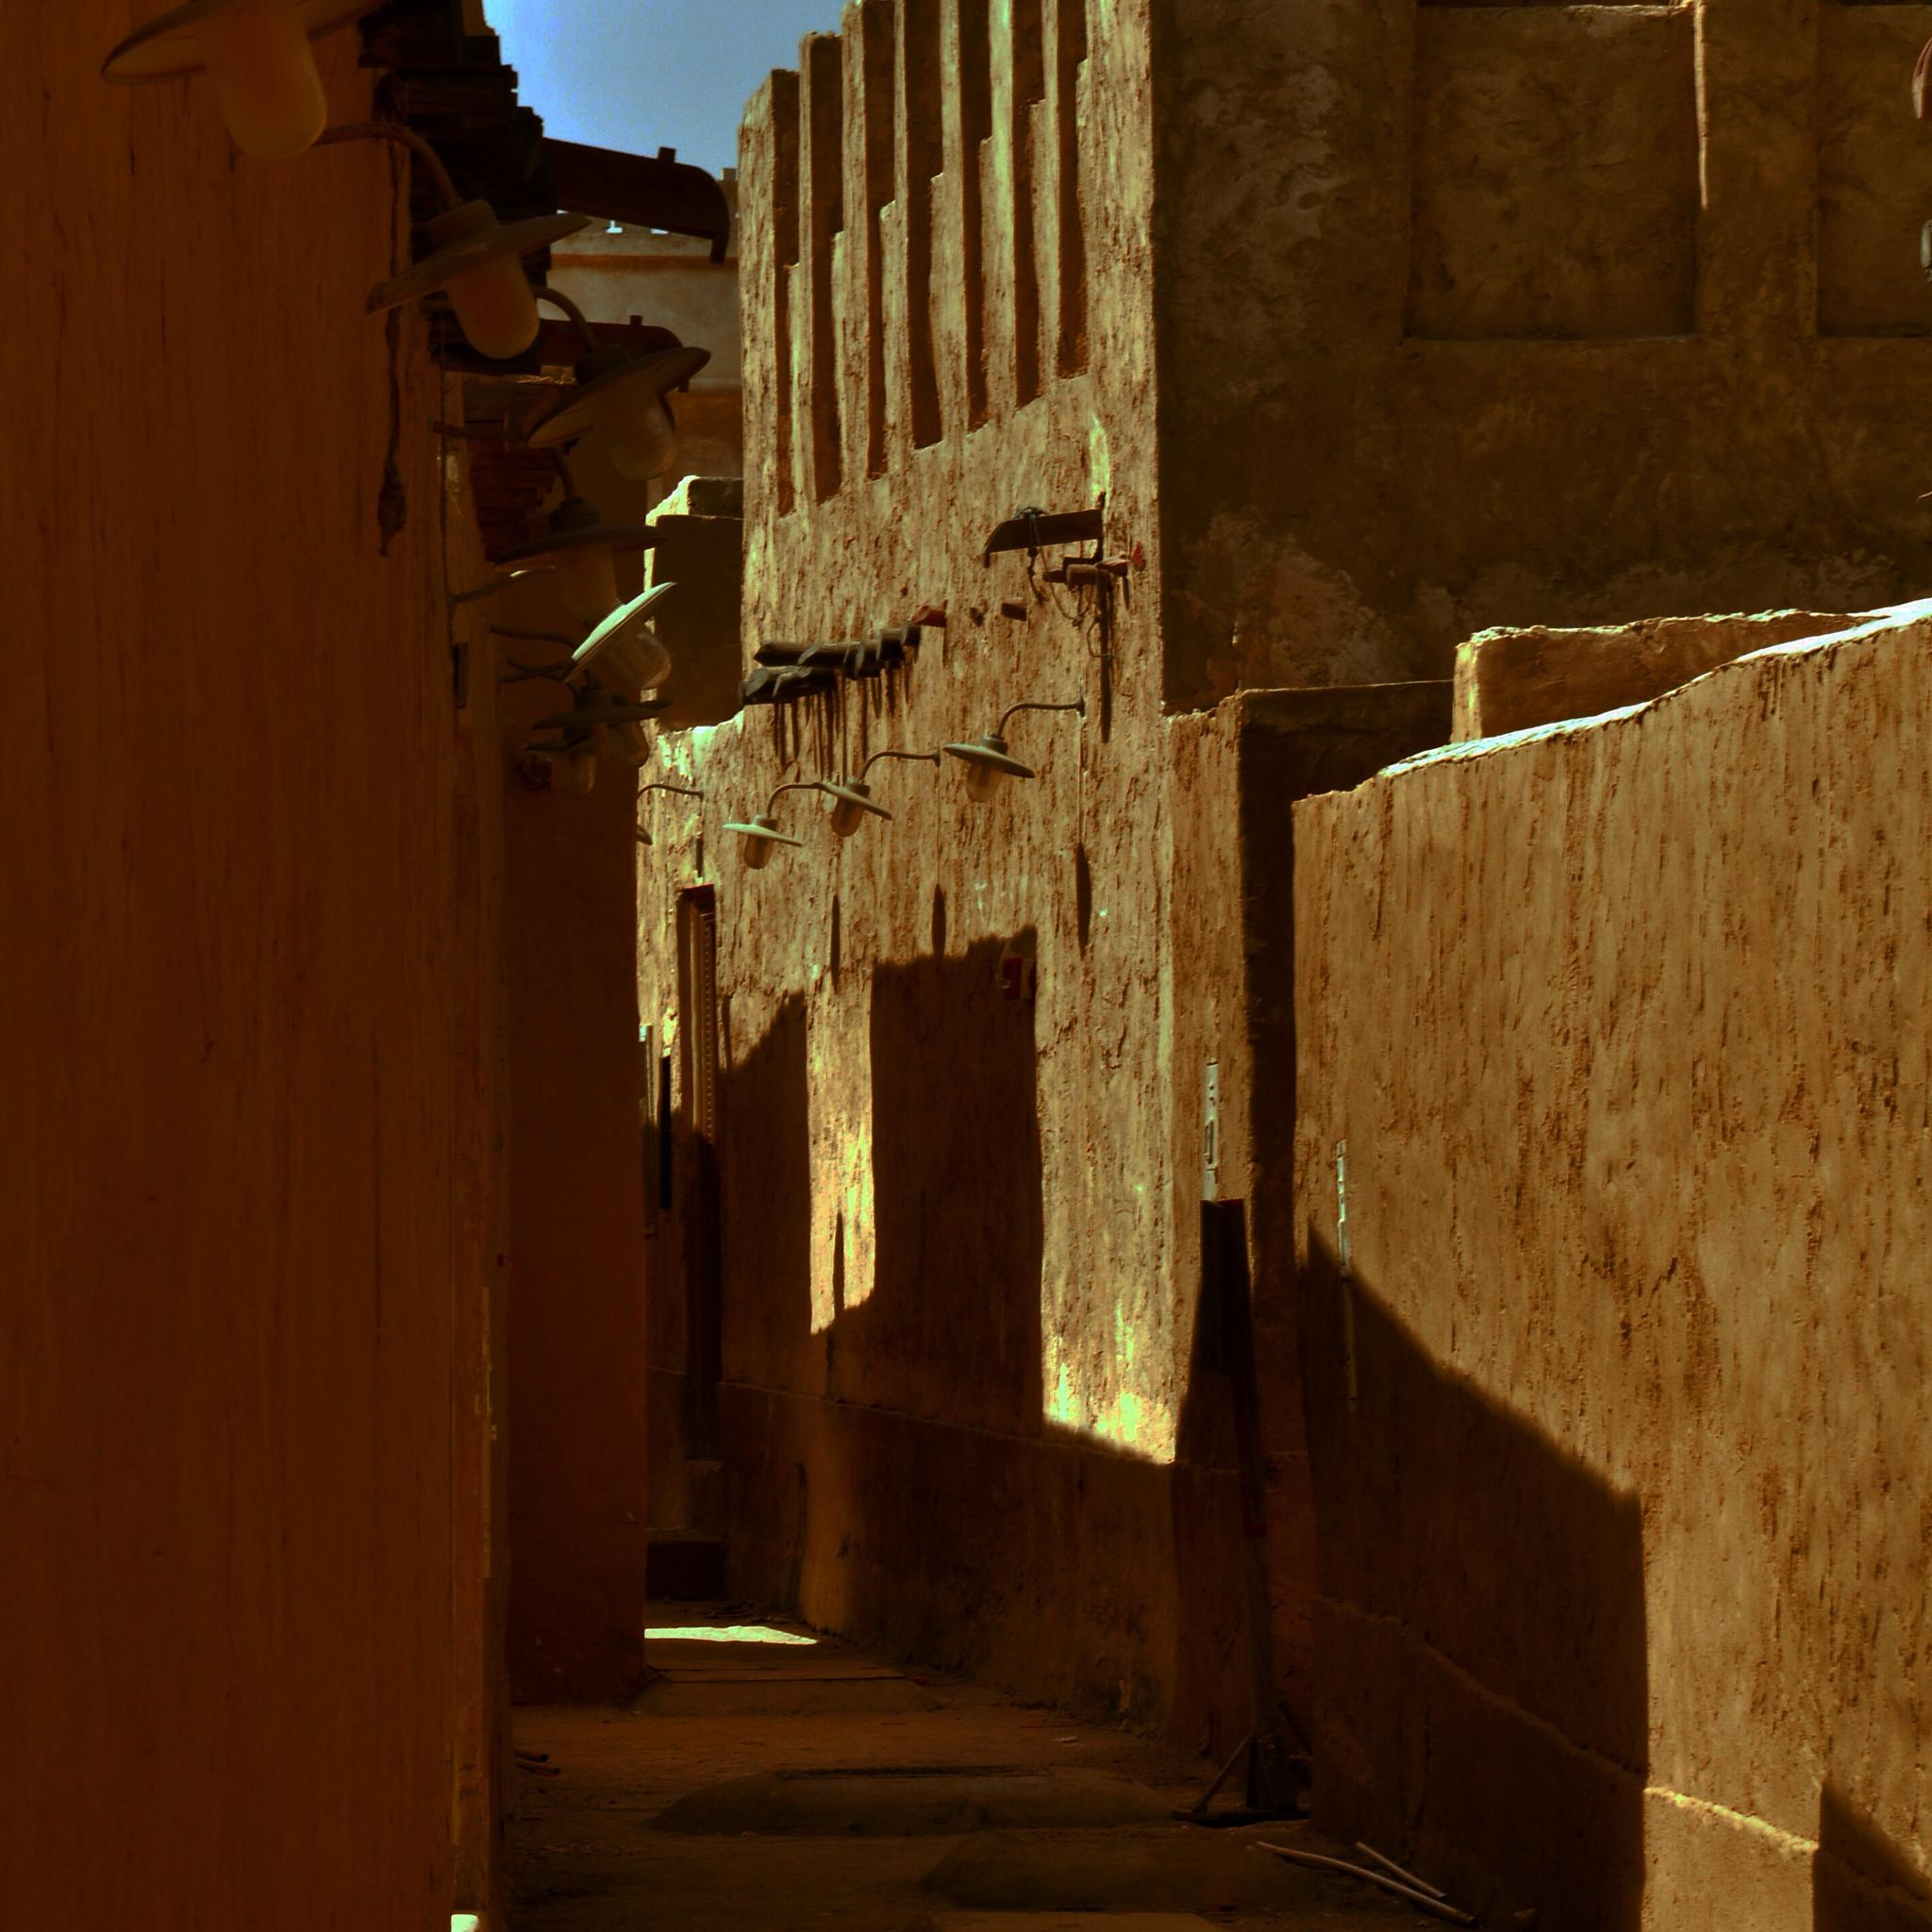 Alley in the afternoon  by wyler.devotta